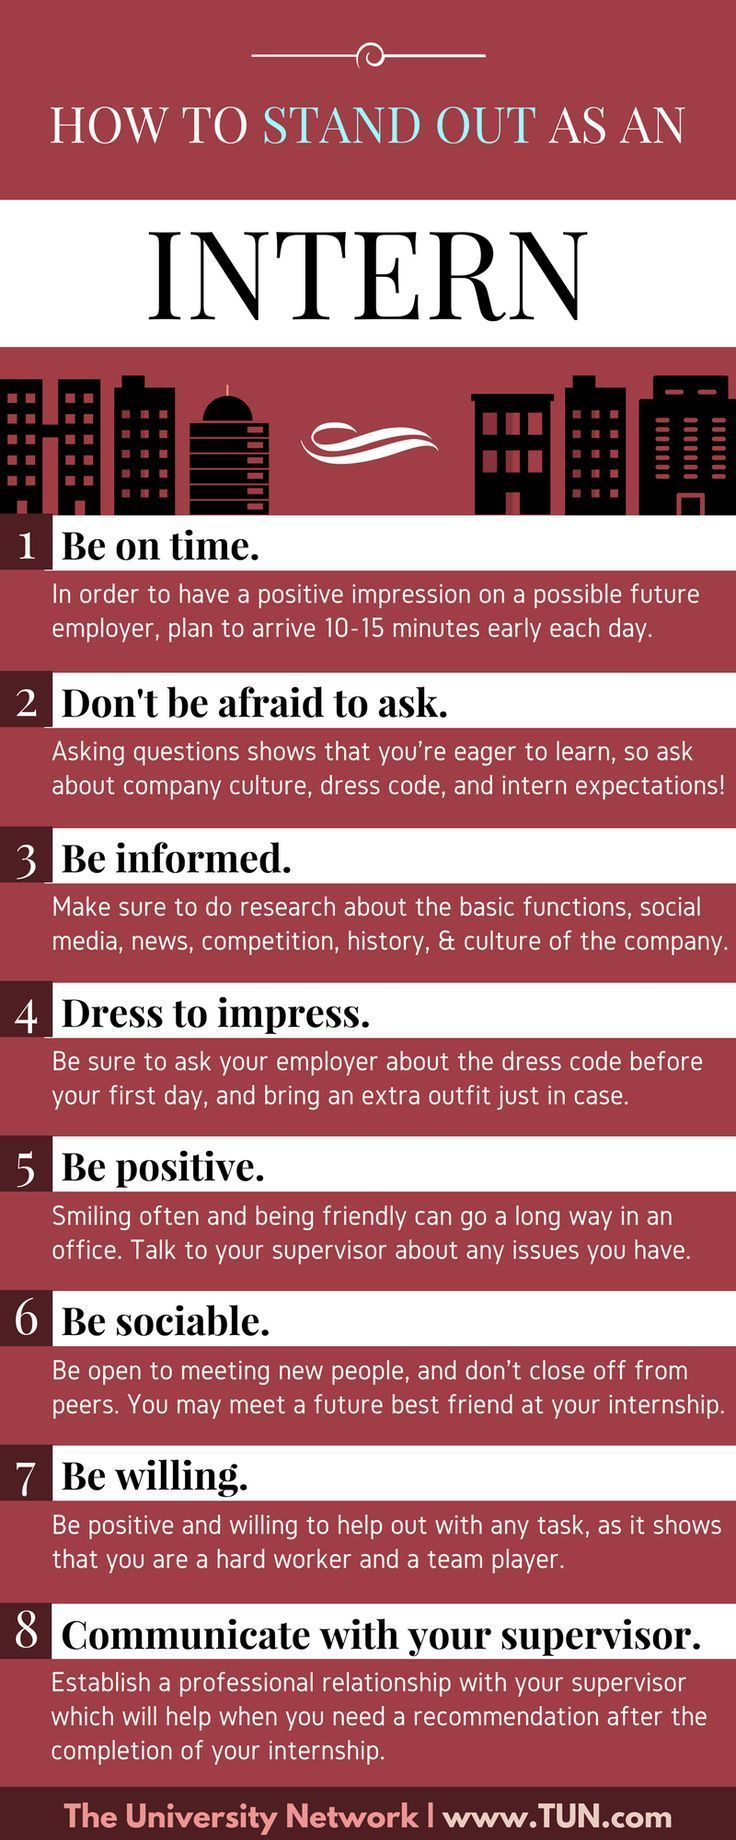 Pin de Ailish McMahon en CV and Job Interview Tips | Pinterest ...